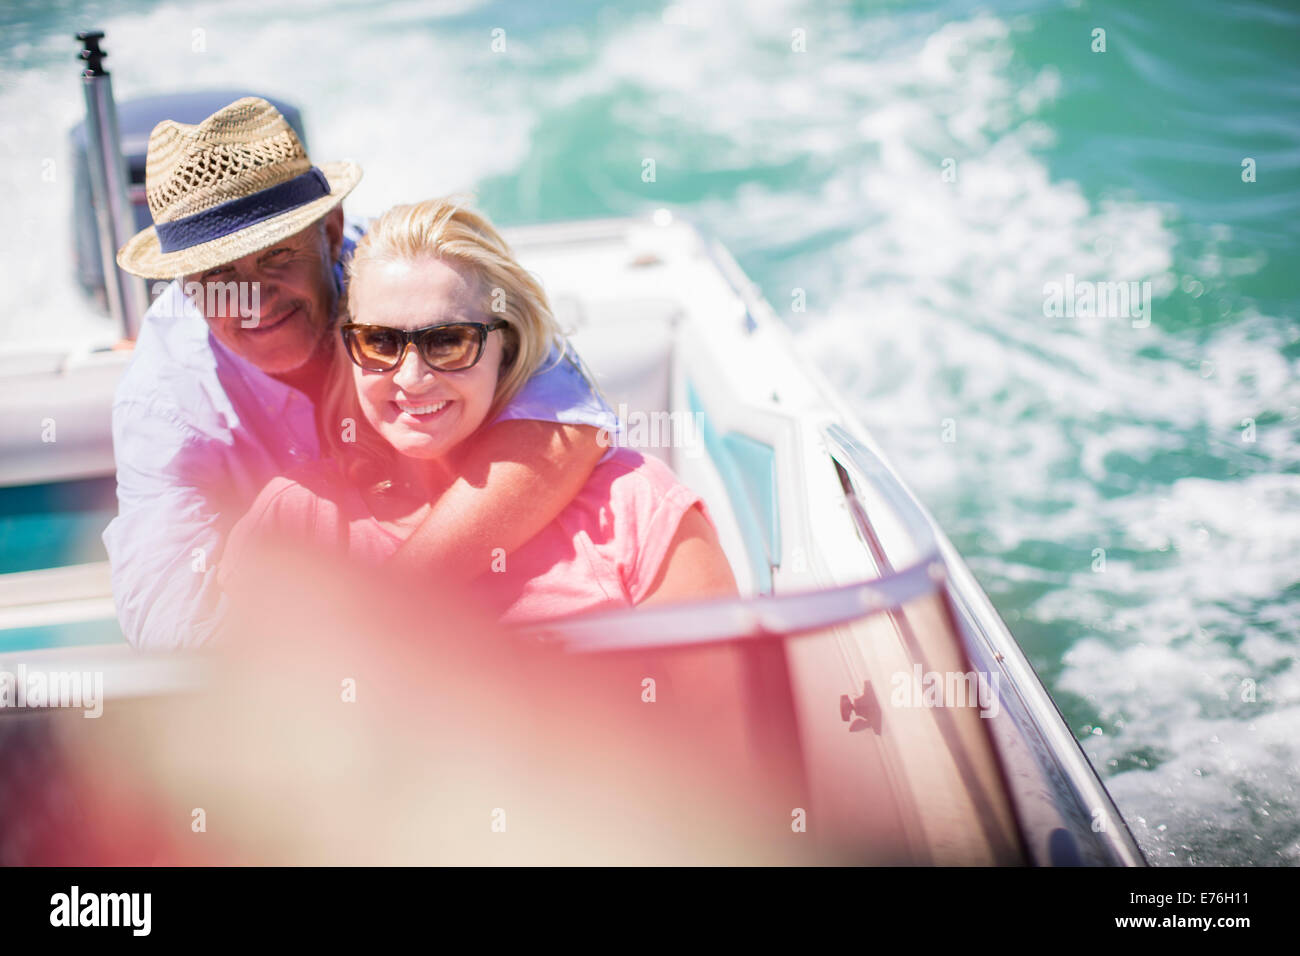 Couple sitting in boat together - Stock Image